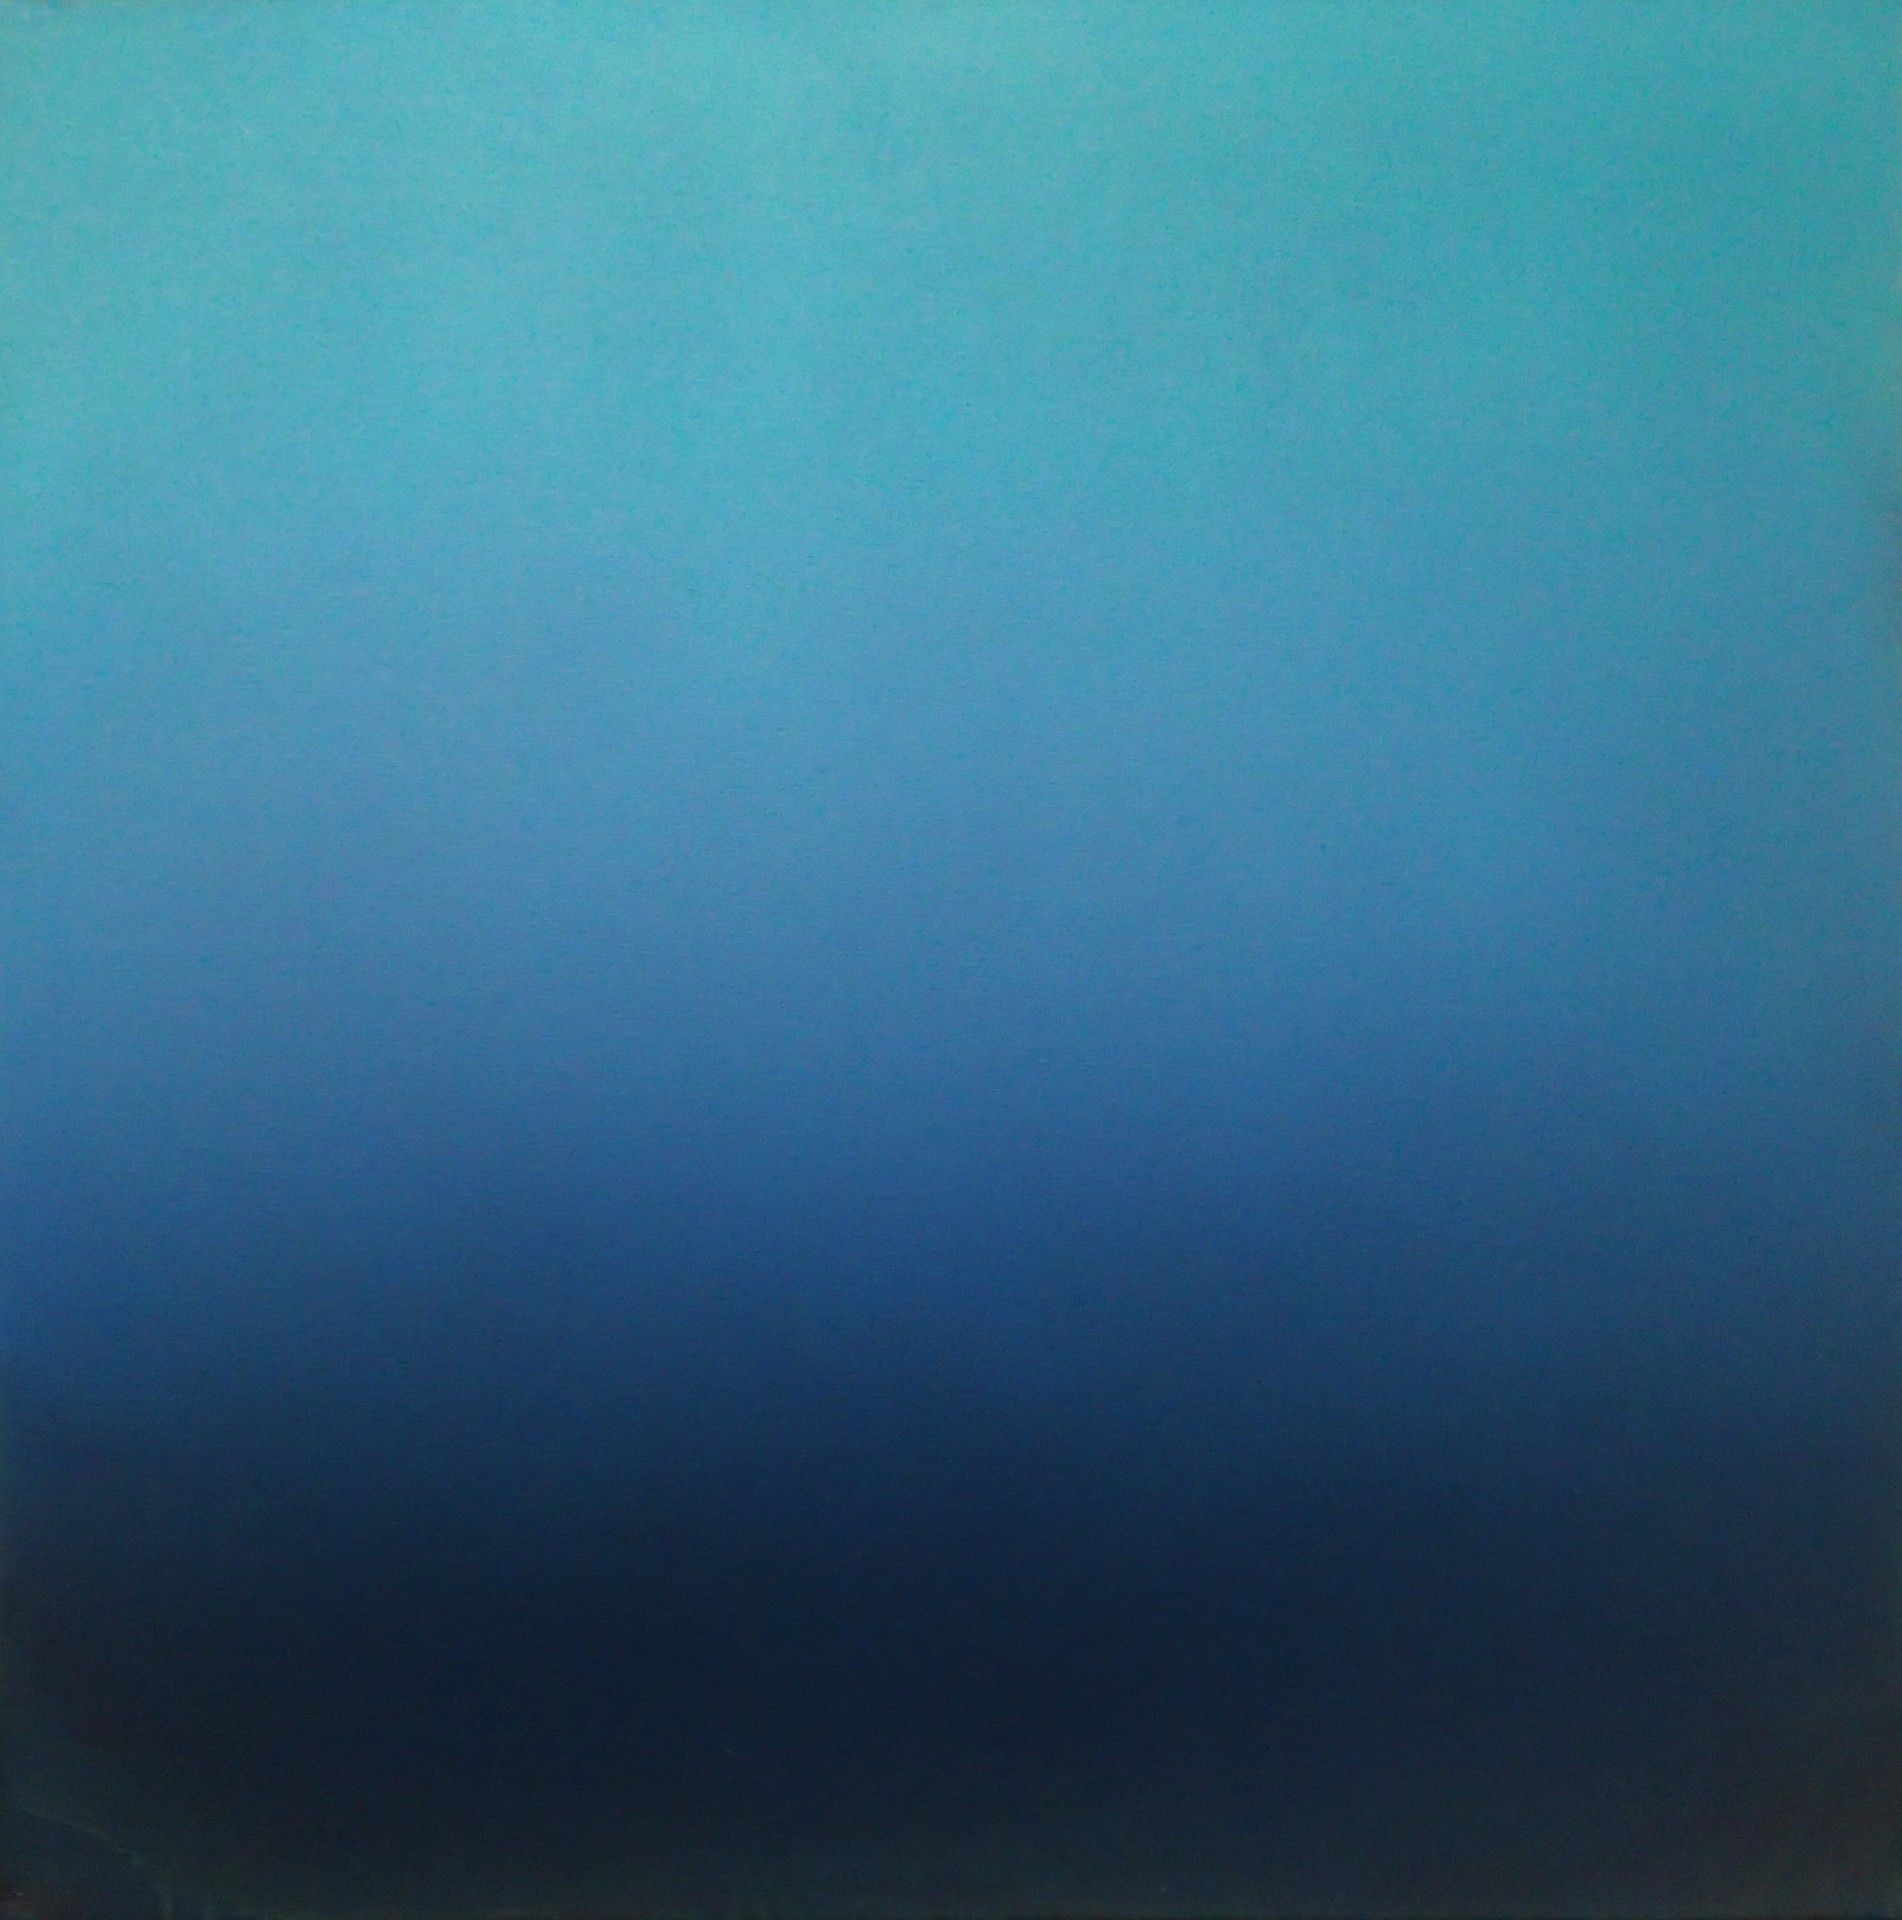 """Silent Search - No. 32, 2015, acrylic on canvas, 30"""" x 30"""""""